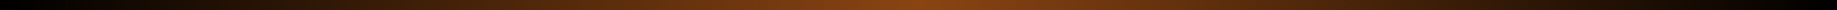 brown fade line.png